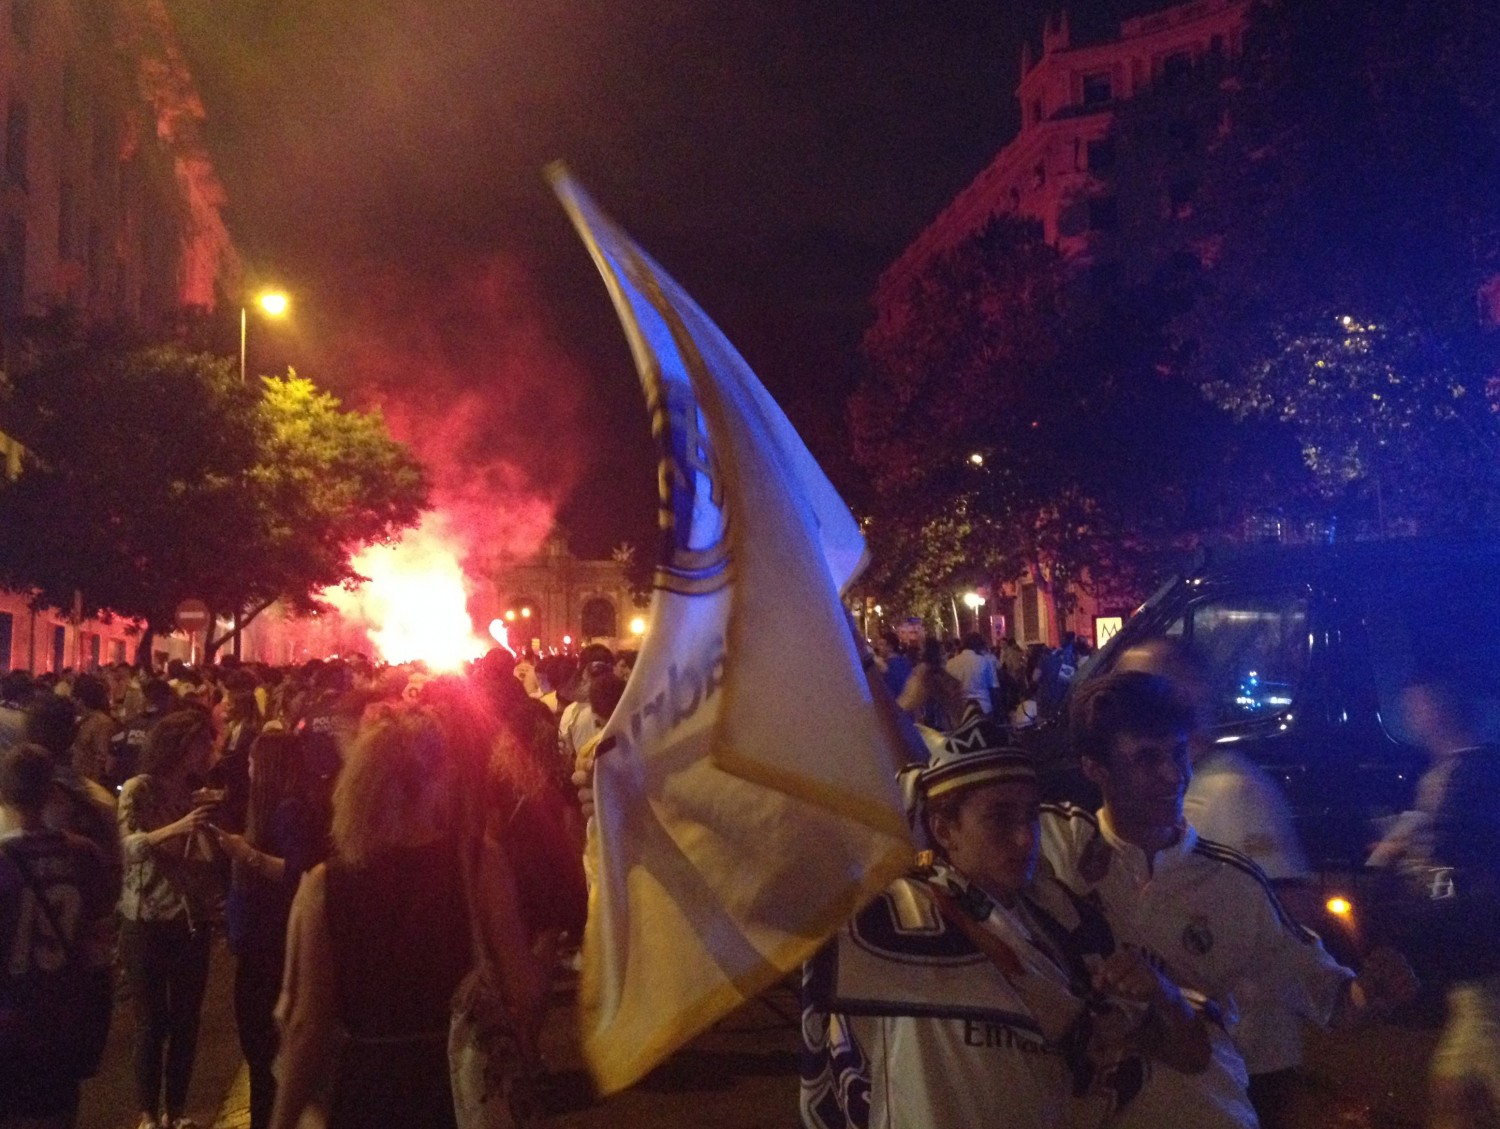 Celebrating in the streets with new friends after Real Madrid wins the Champions League final